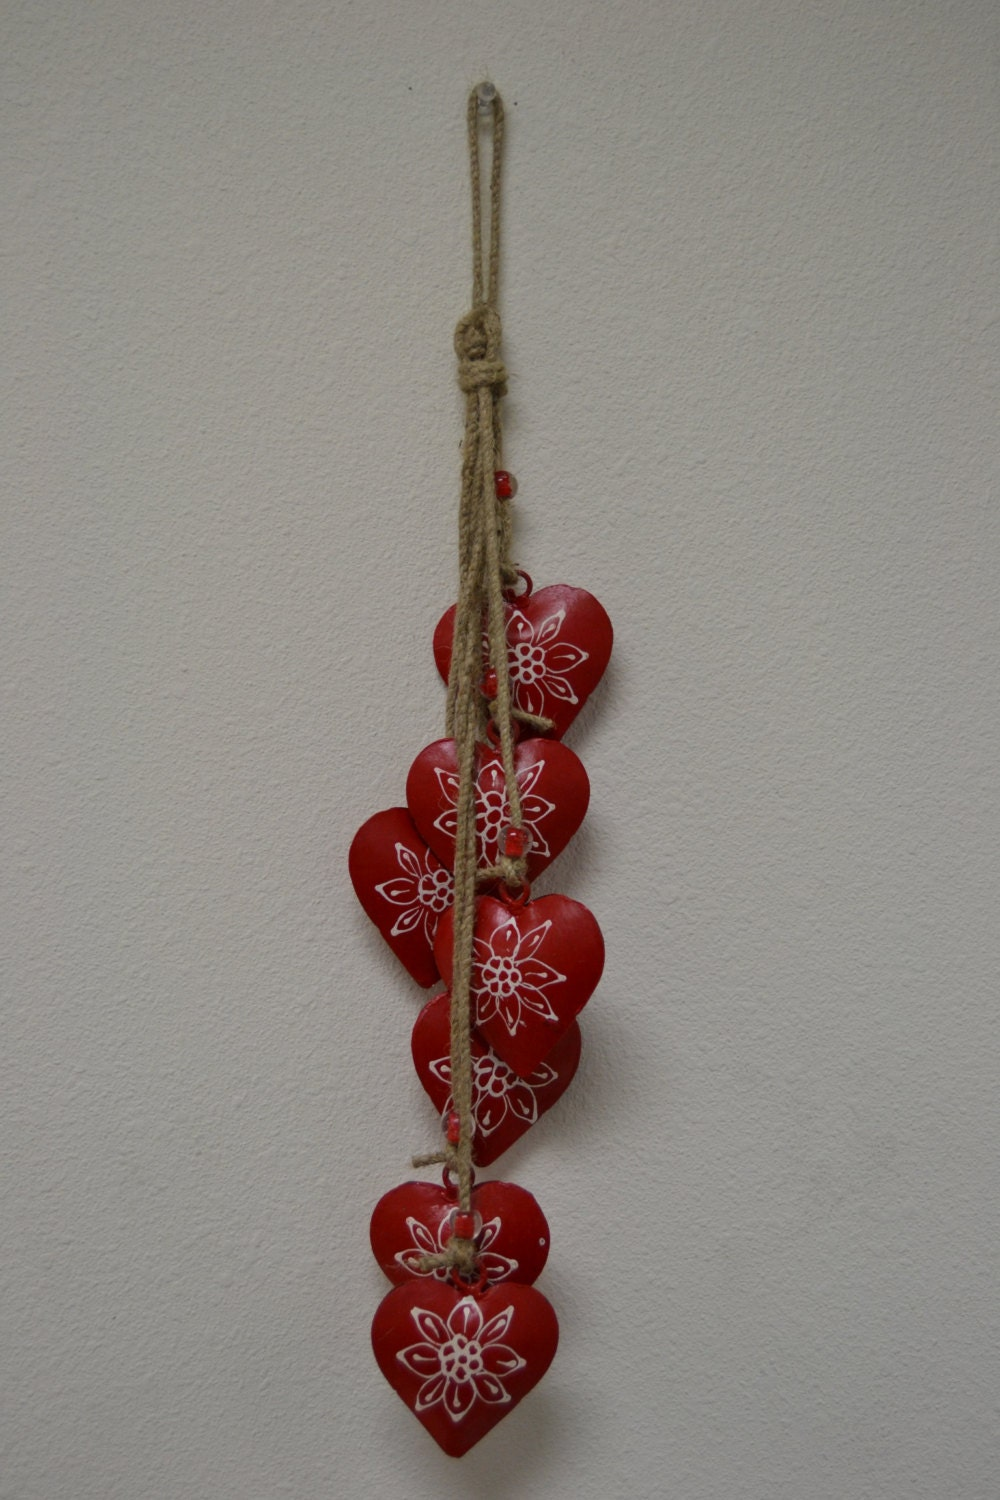 red heart rusty iron metal bells wind chime handcrafted yard. Black Bedroom Furniture Sets. Home Design Ideas